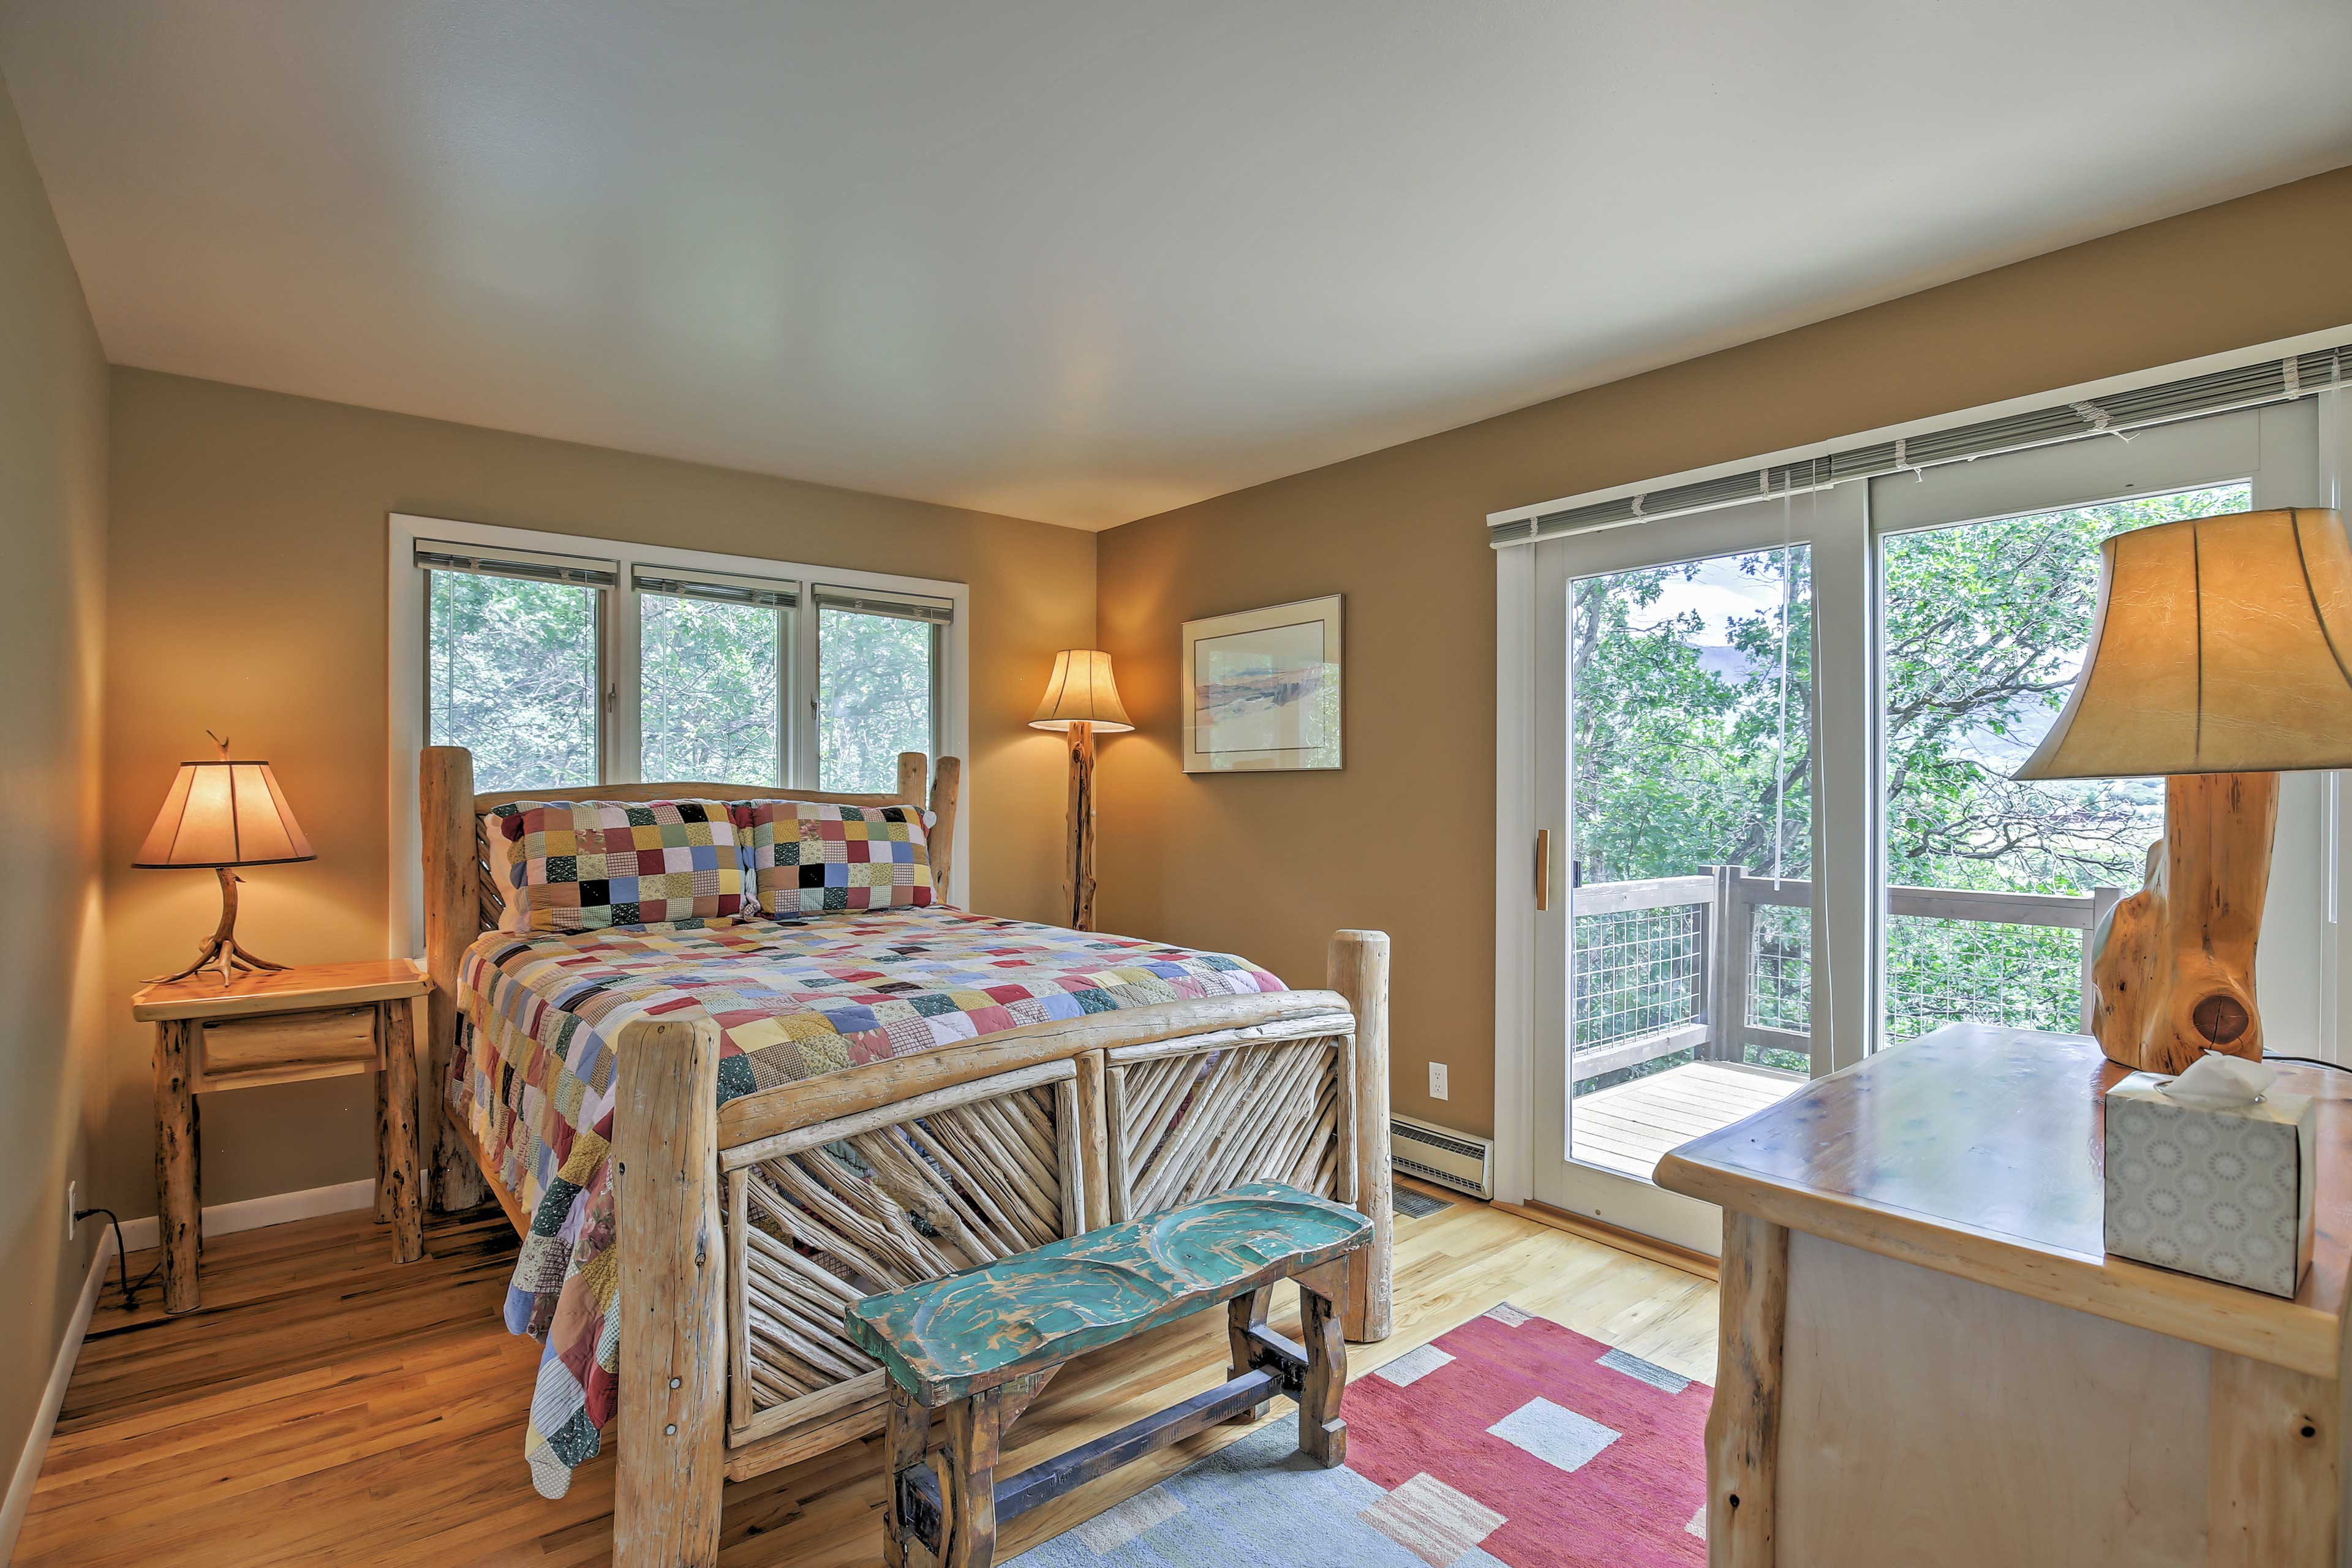 The second bedroom features a full-sized bed.